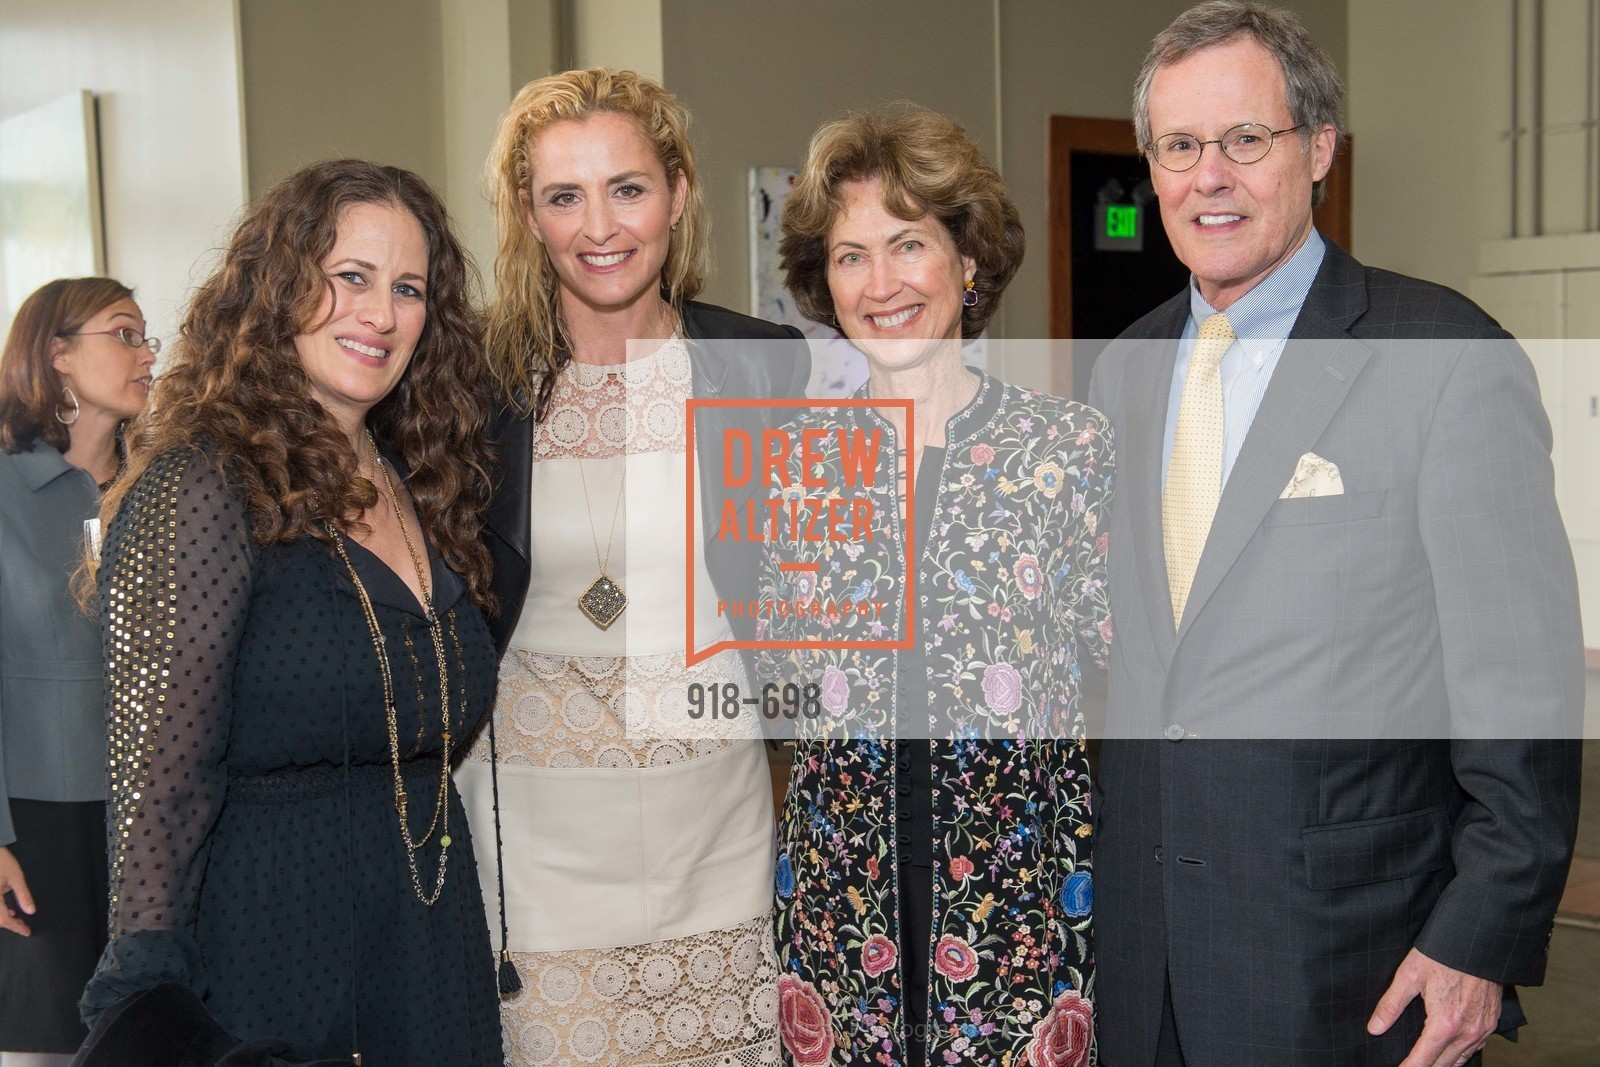 Julia Cohen, Ami Aronson, Mauree Jane Perry, Mark Perry, EWG's 6th Annual Earth Dinner, US, May 5th, 2015,Drew Altizer, Drew Altizer Photography, full-service agency, private events, San Francisco photographer, photographer california